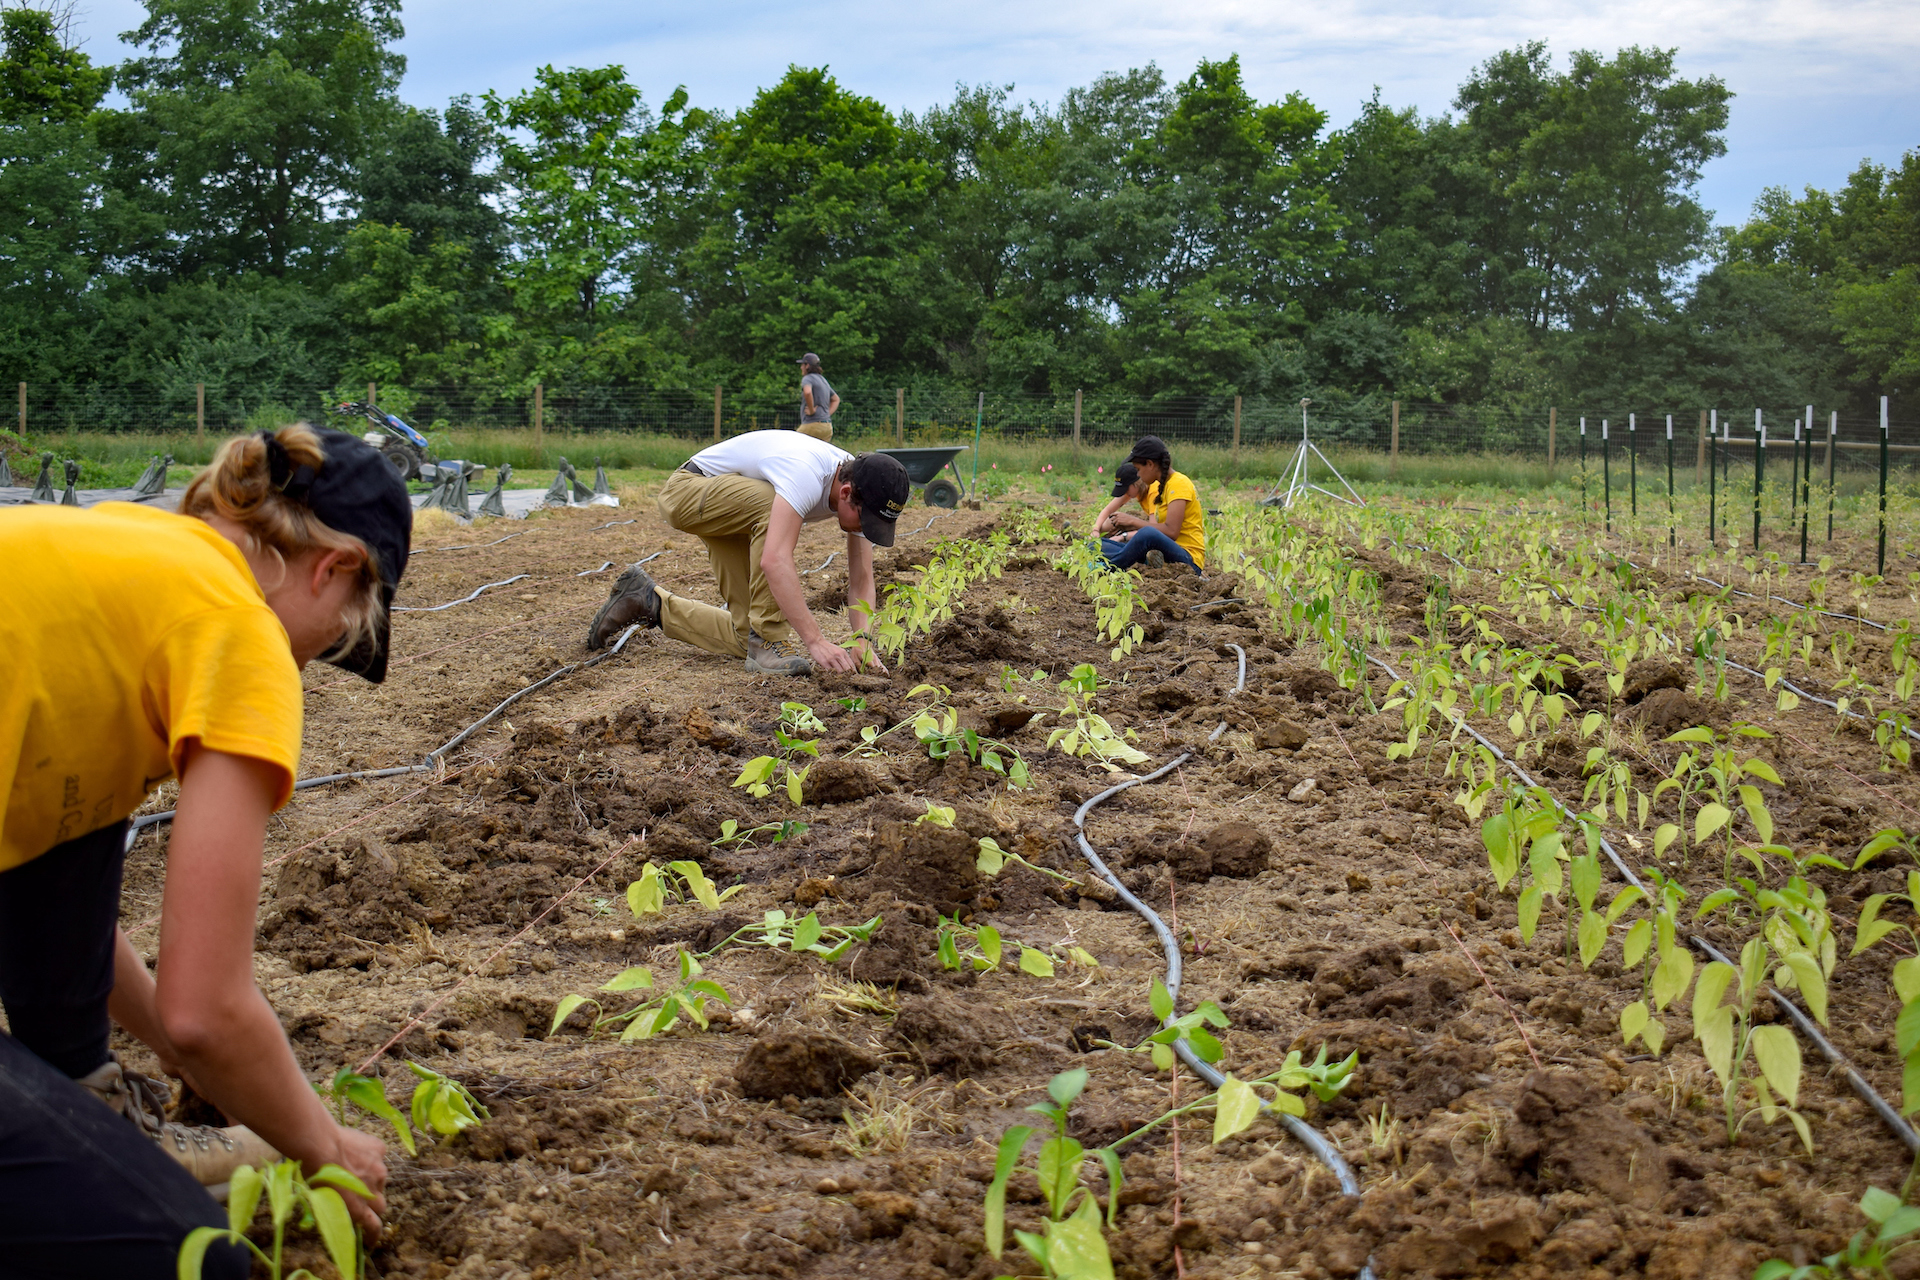 Students digging in the dirt at the Campus Farm